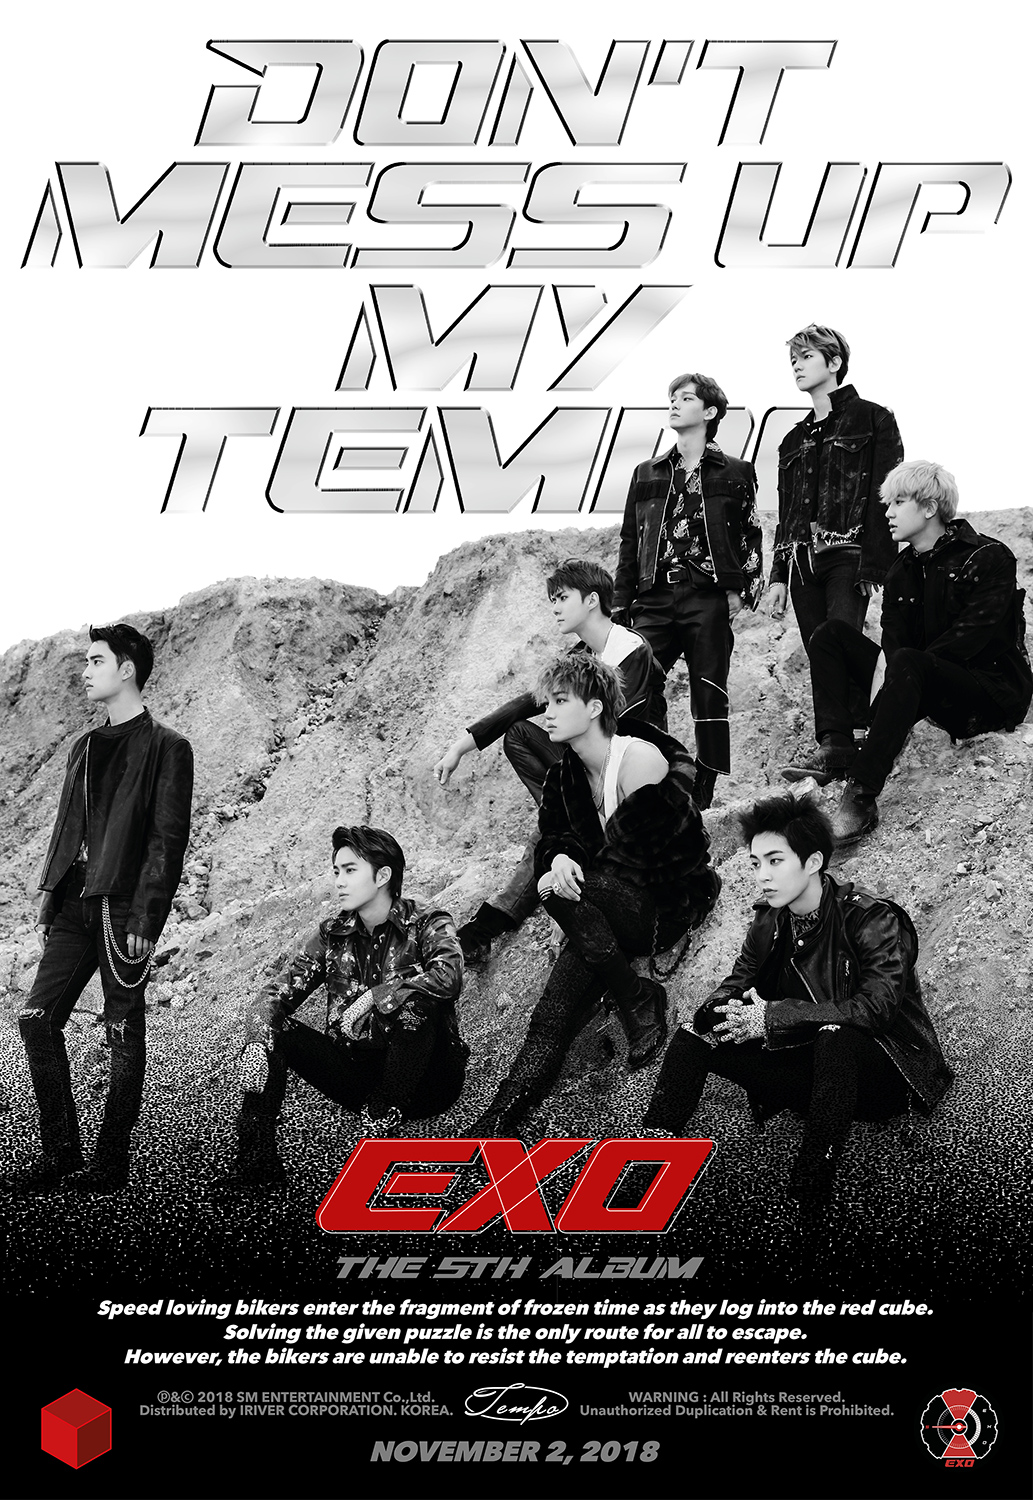 Exo Turn Into Bikers In Tempo Teaser Video Ahead Of New Album S